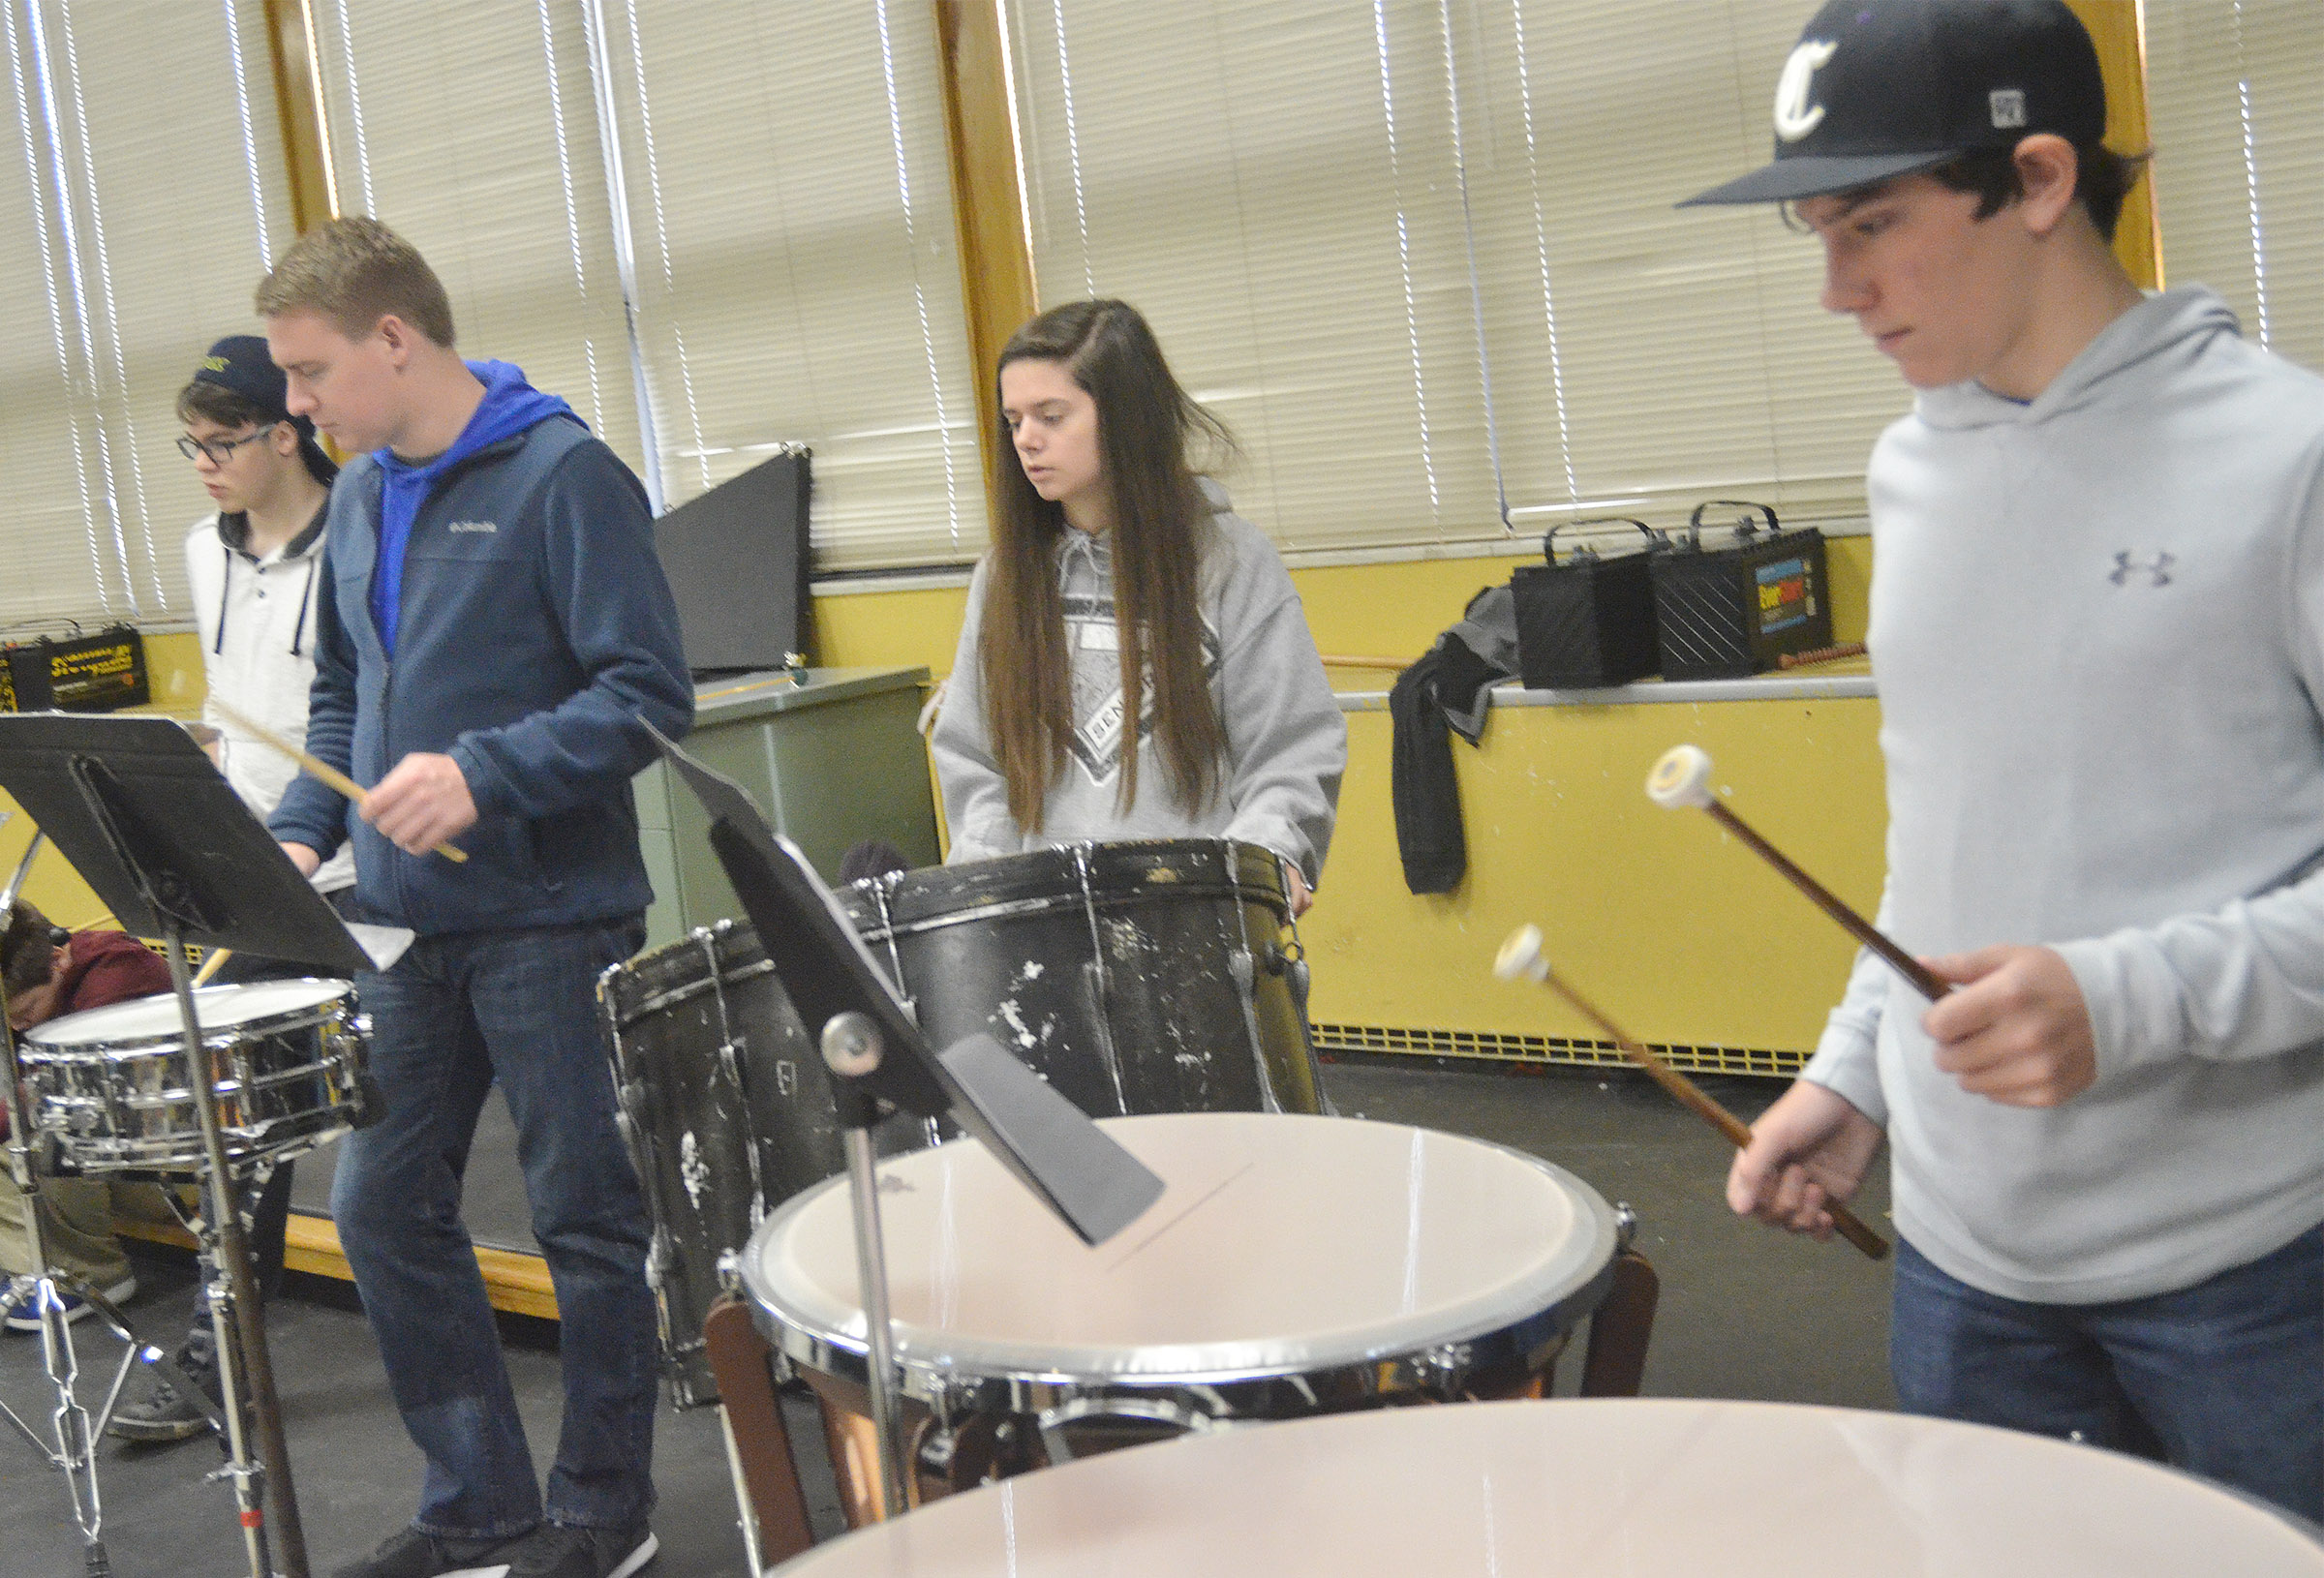 Lindsey Wilson College music student Taylor Cook works with CHS percussion players, from left, sophomore Kyler Rakes, senior Shauna Jones and Campbellsville Middle School seventh-grader Peyton Dabney.